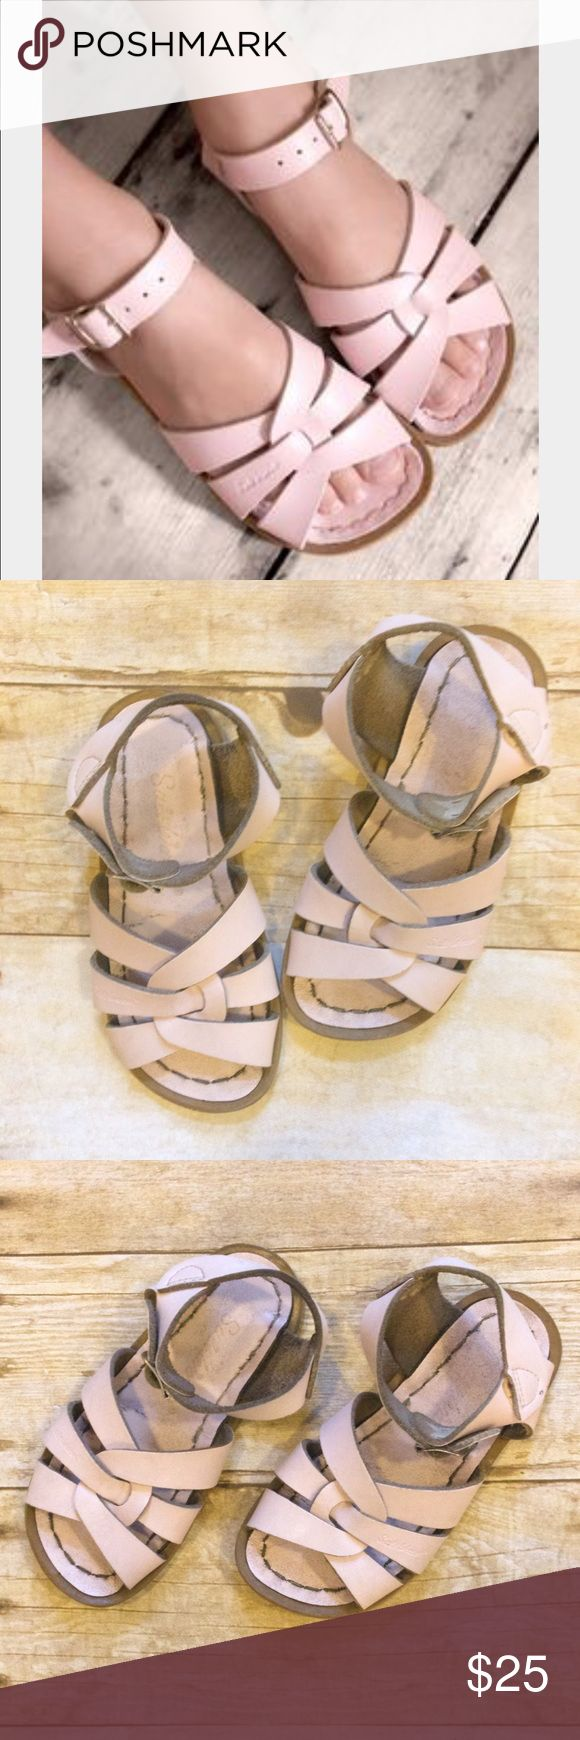 SALTWATER Light Pink Sandals Super comfy and stylish pair of sandals for Play, going into the water, and dress up! In a used condition. Salt Water Sandals by Hoy Shoes Sandals & Flip Flops